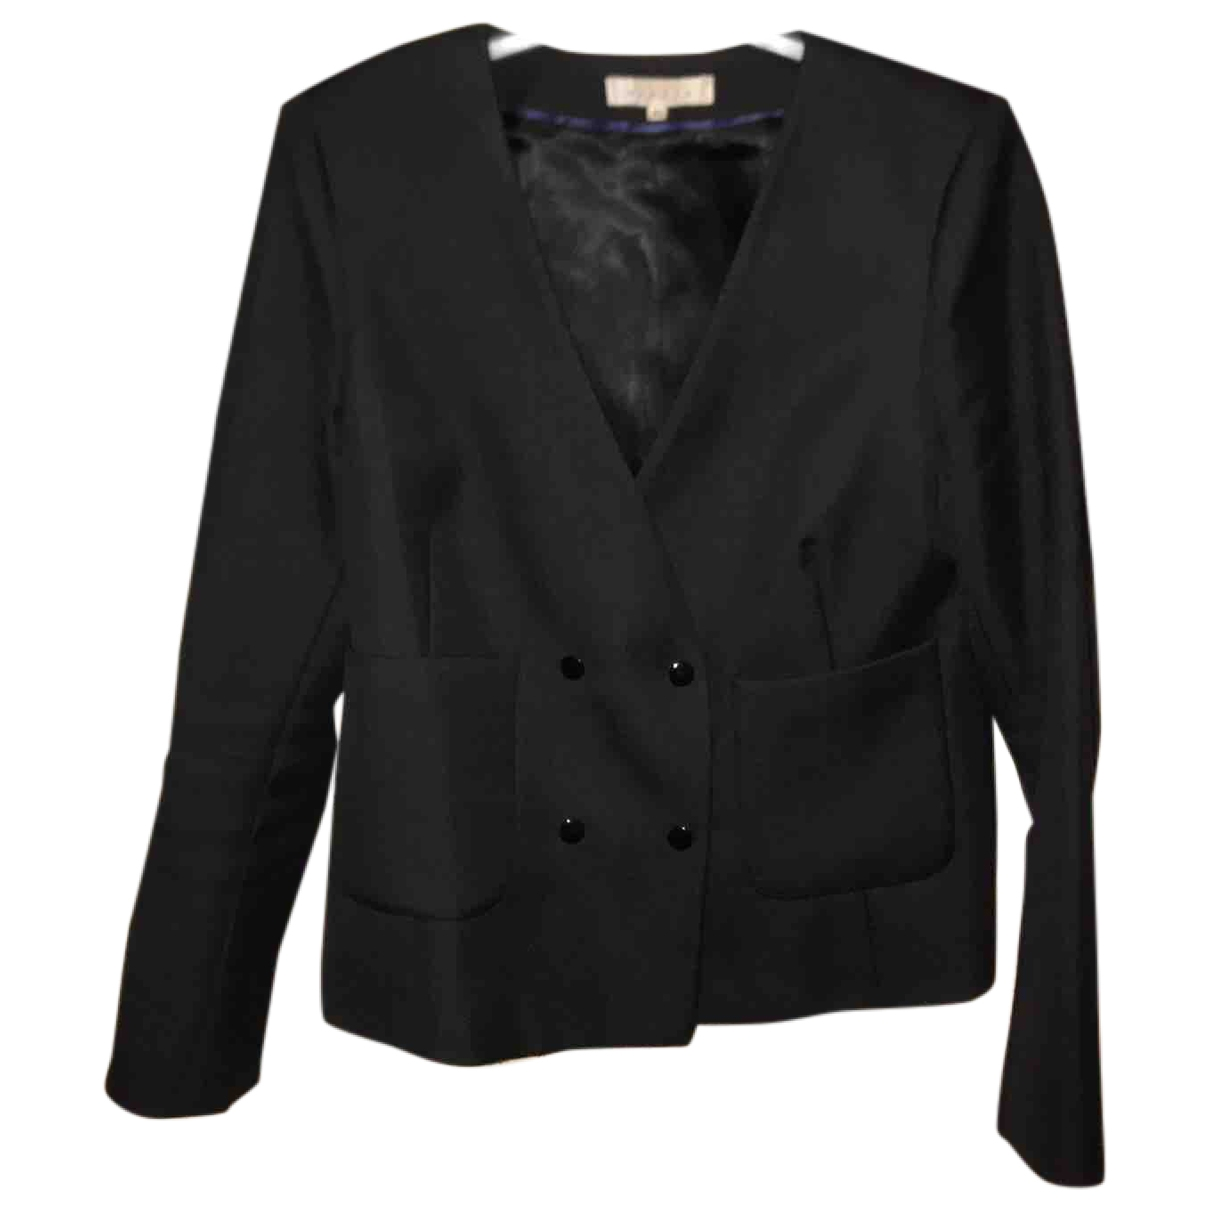 Sandro \N Black Cotton jacket for Women 40 FR